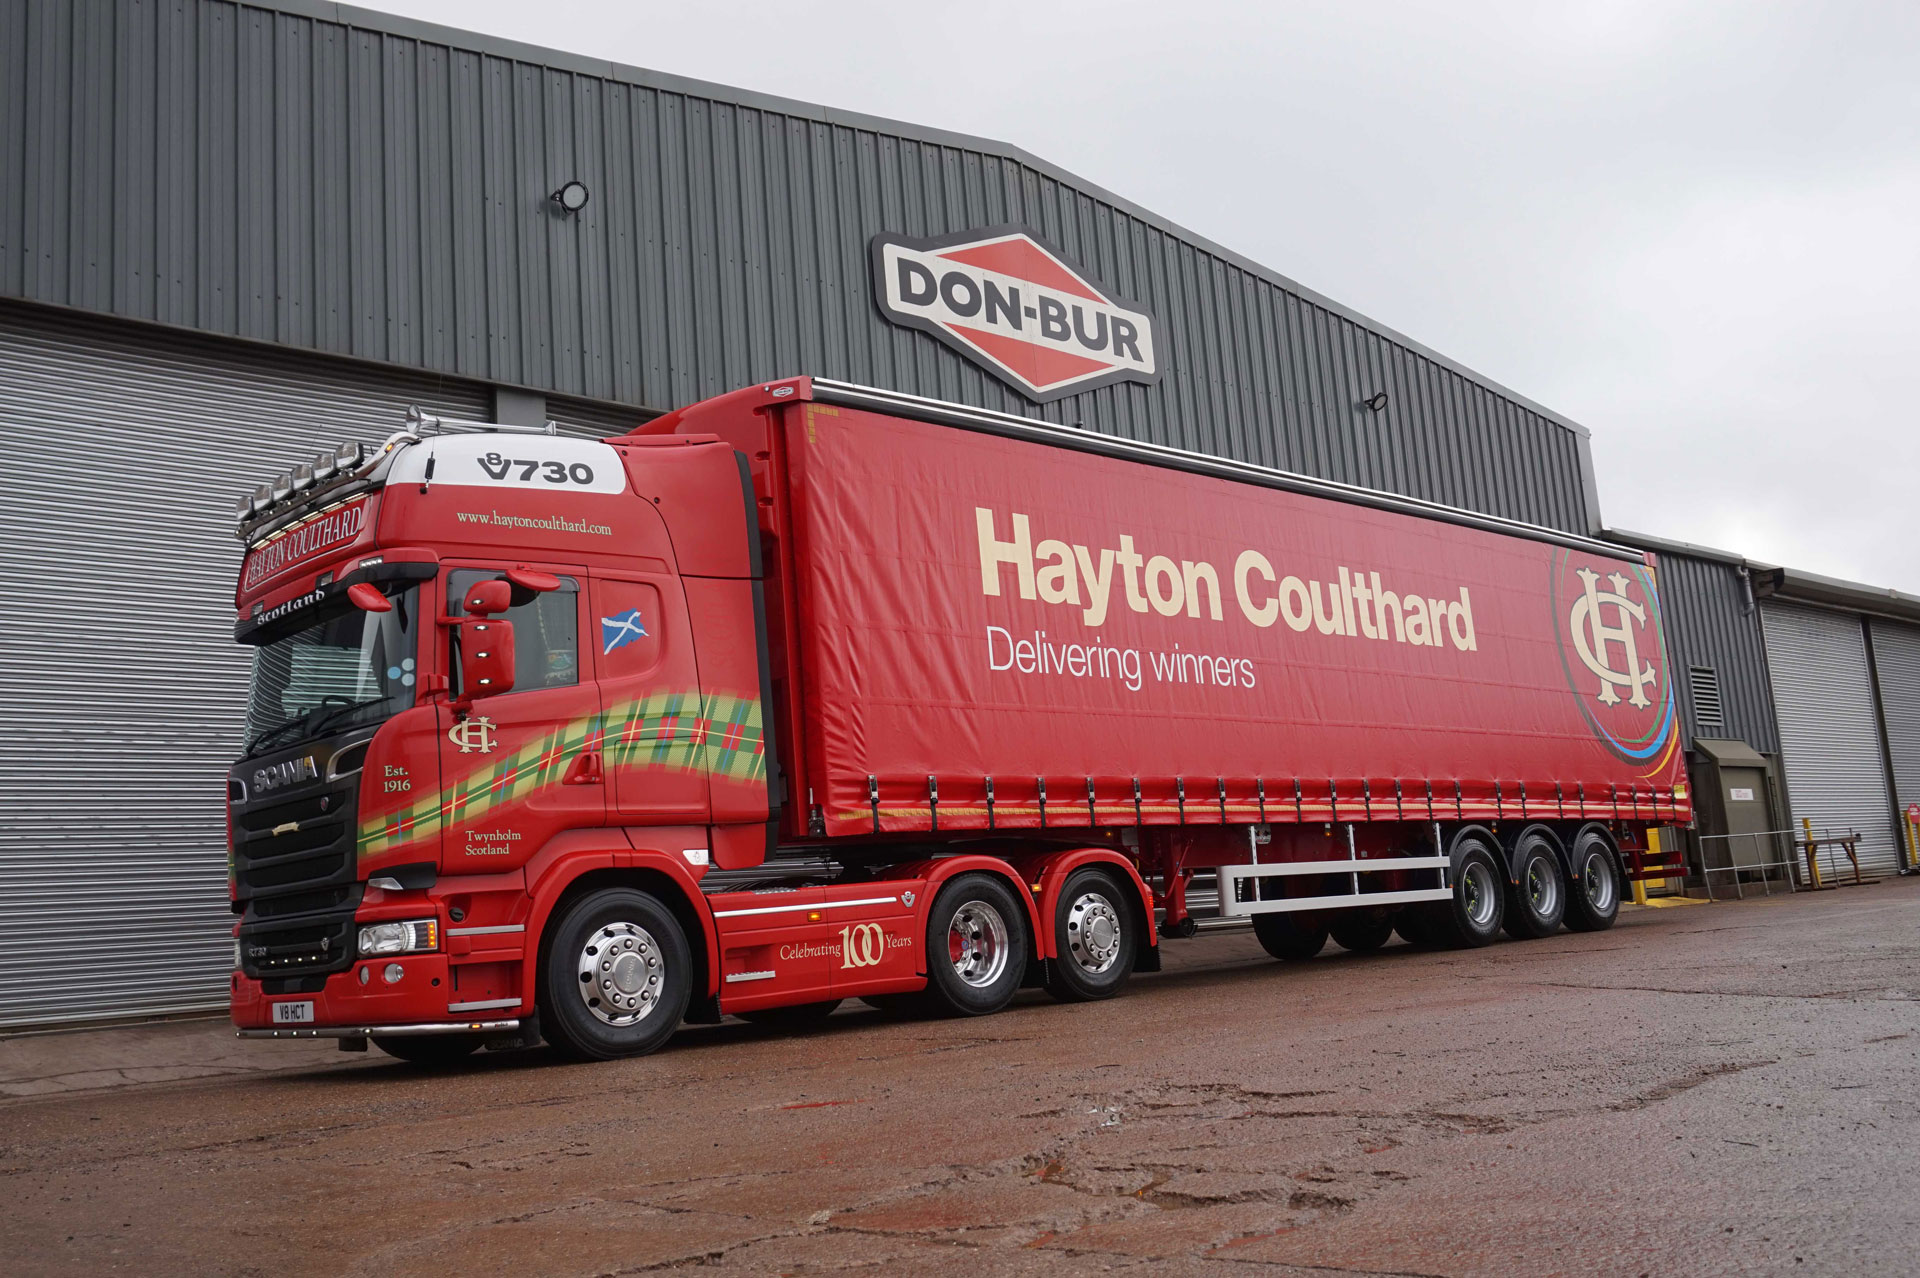 Hayton Coulthard Purchase Curtainsiders From Don-Bur